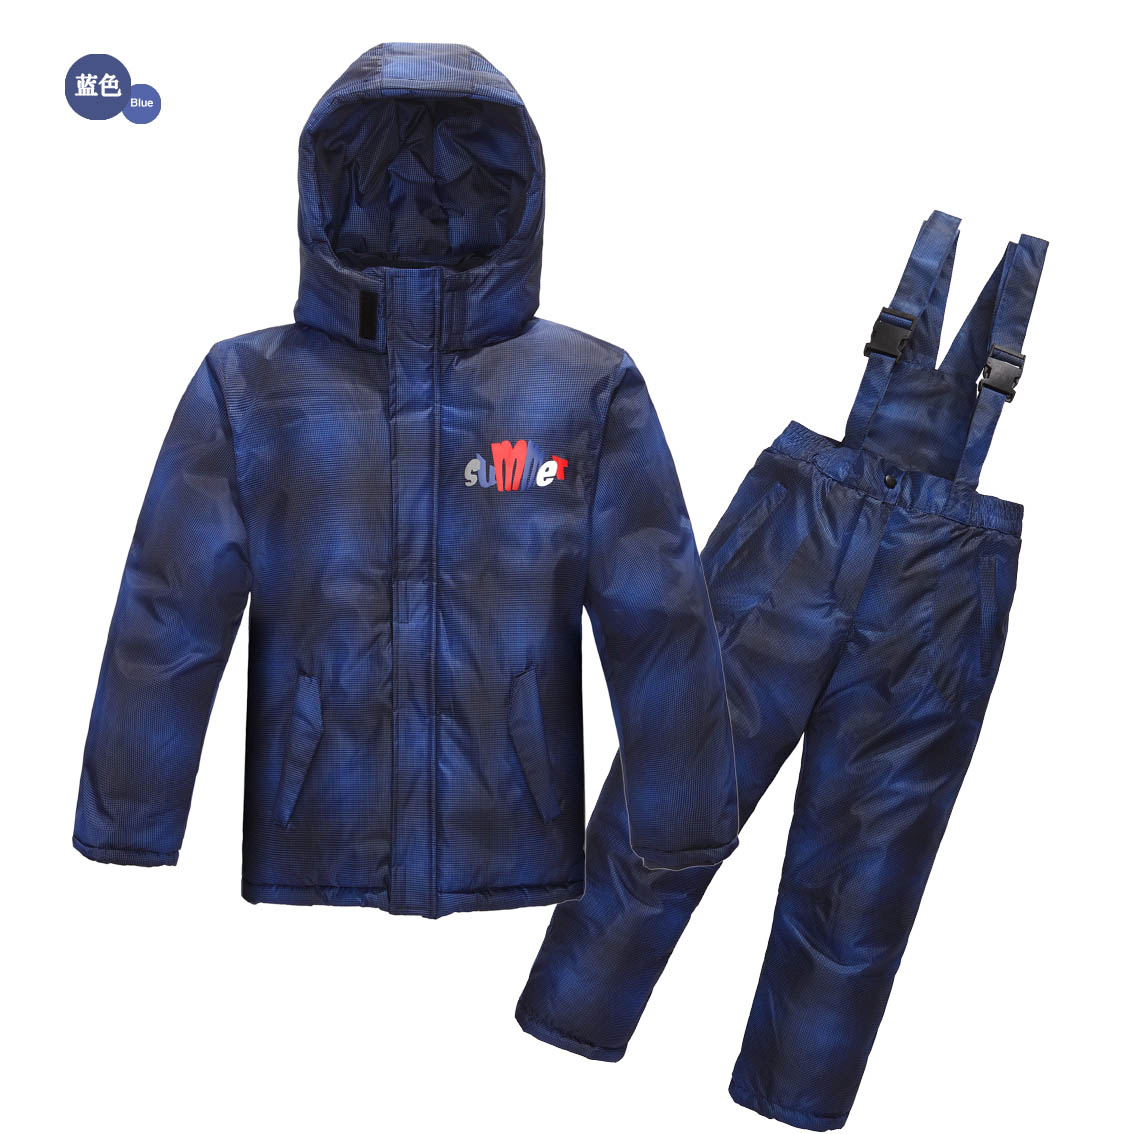 ФОТО CLEARANCE Outdoor Ski Suit 2016 Boys Warm Suit Kids Winter Clothing Set skiing Jacket+Pants Russian Winter -20-30 Degree